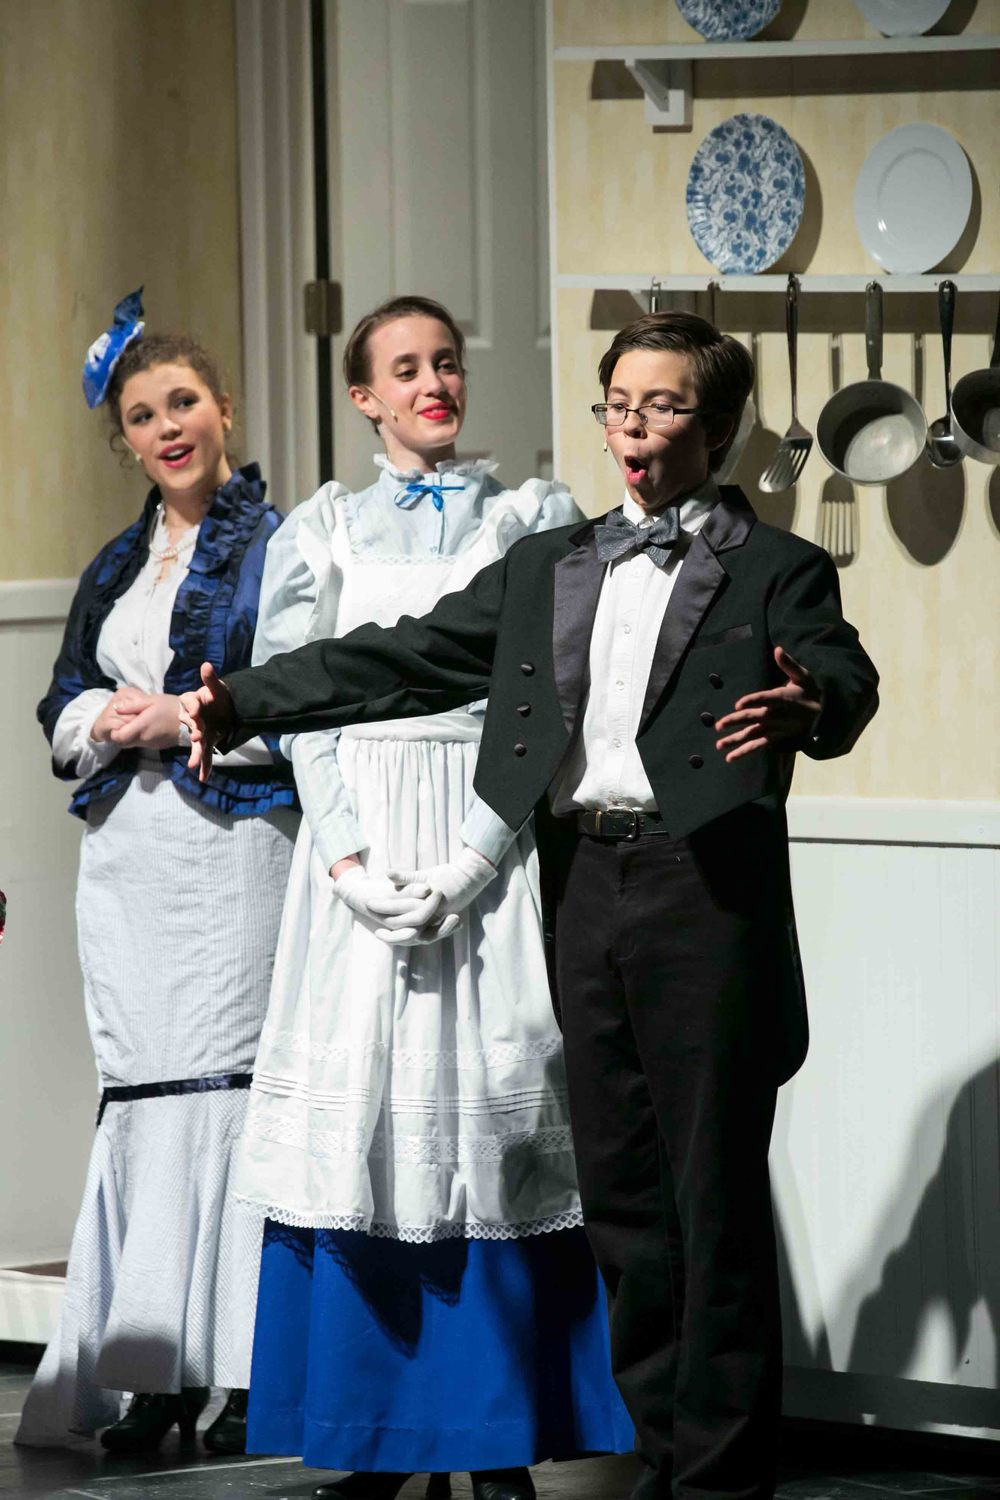 2-4-16 Mary Poppins Proper Cast 0191.jpg